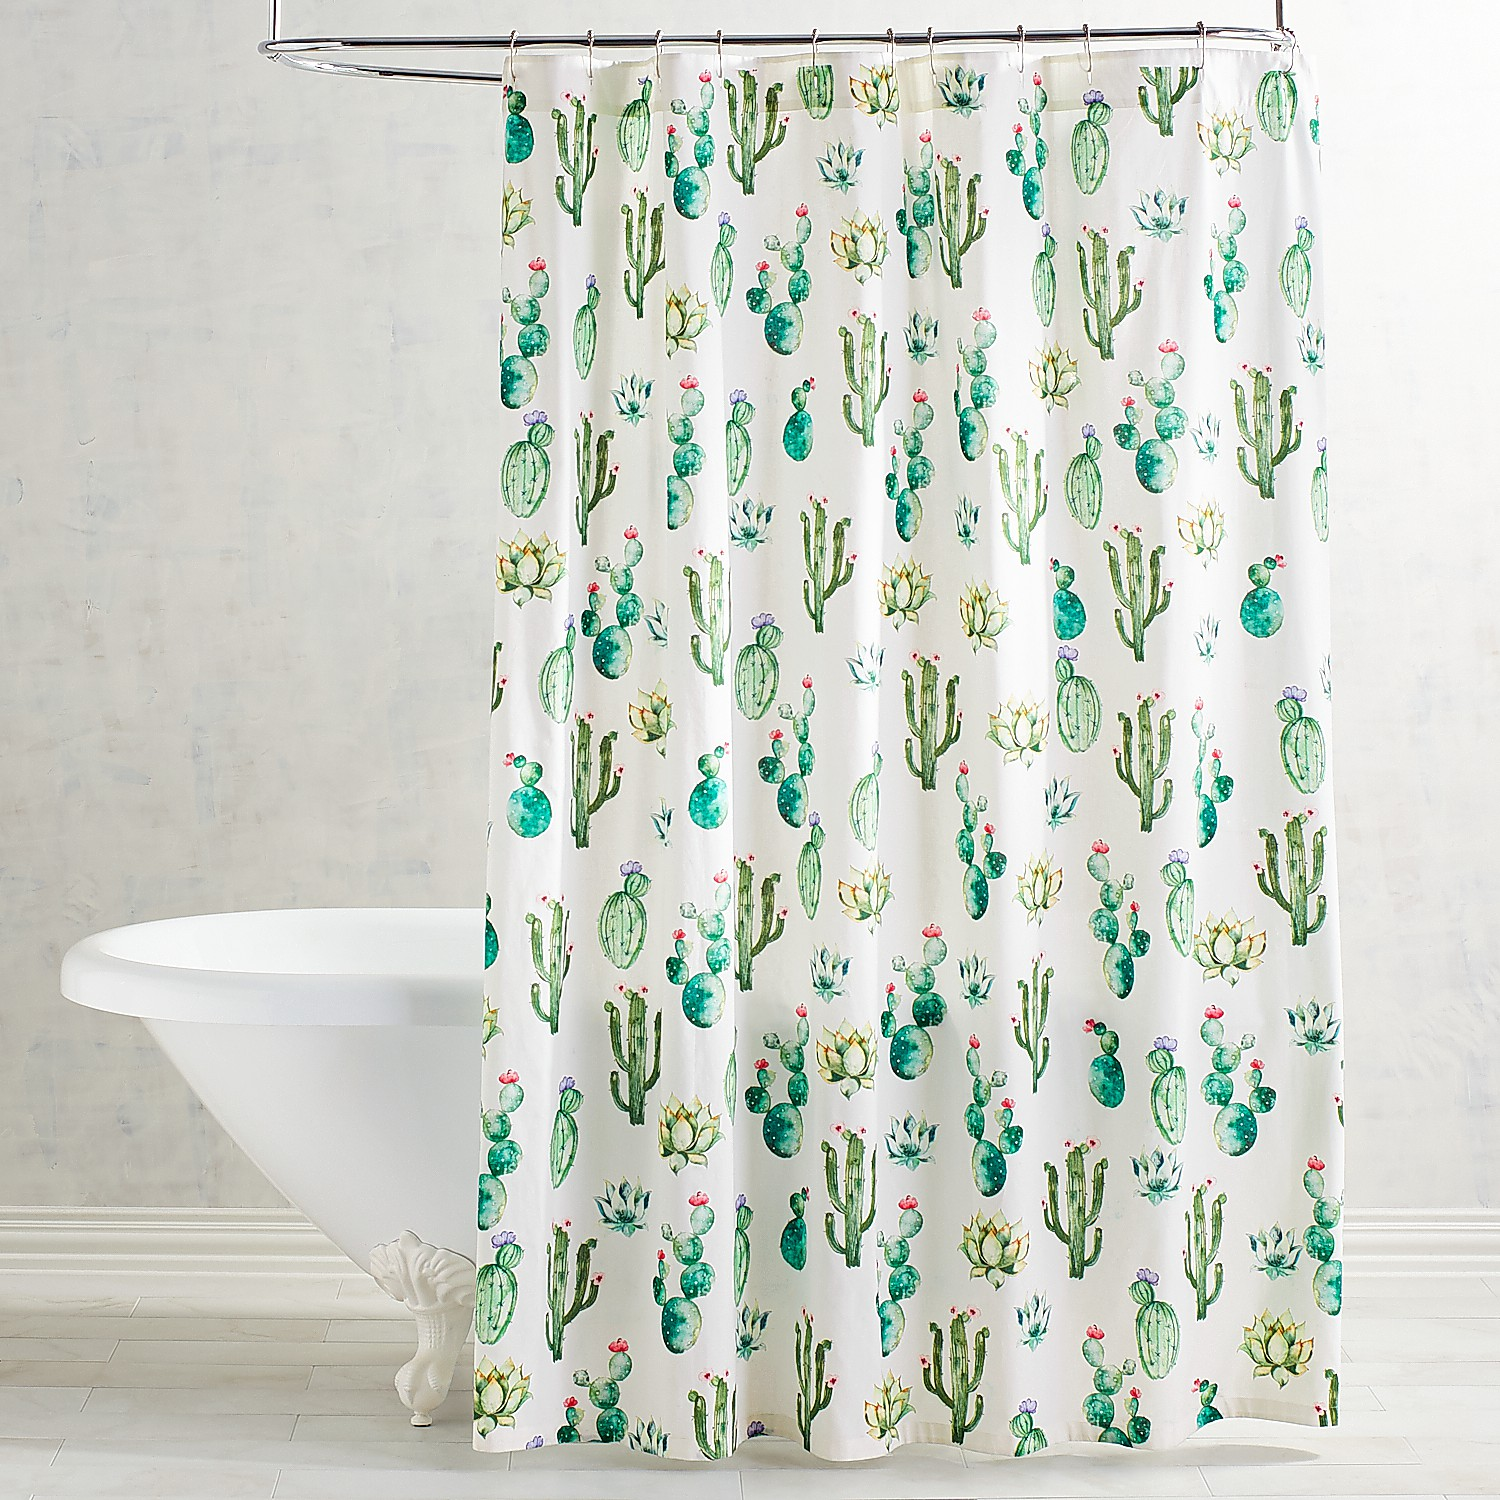 Watercolor Cactus Shower Curtain